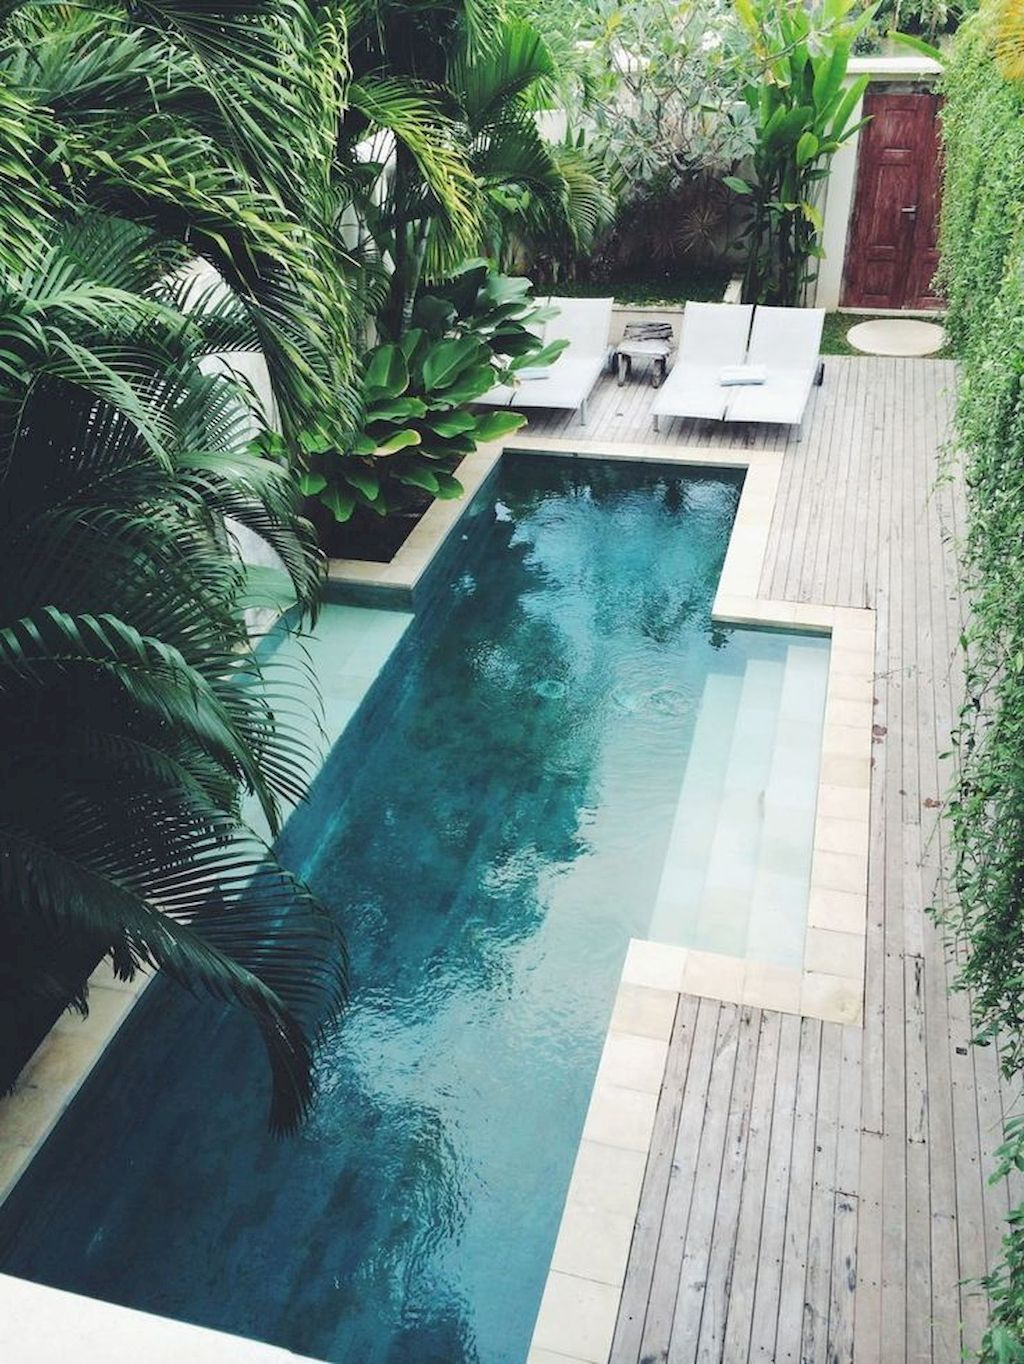 Astonishing Expertise The Final Luxurious With A Swimming Pool Tropical Pool Landscaping Small Pool Design Lap Pool Designs